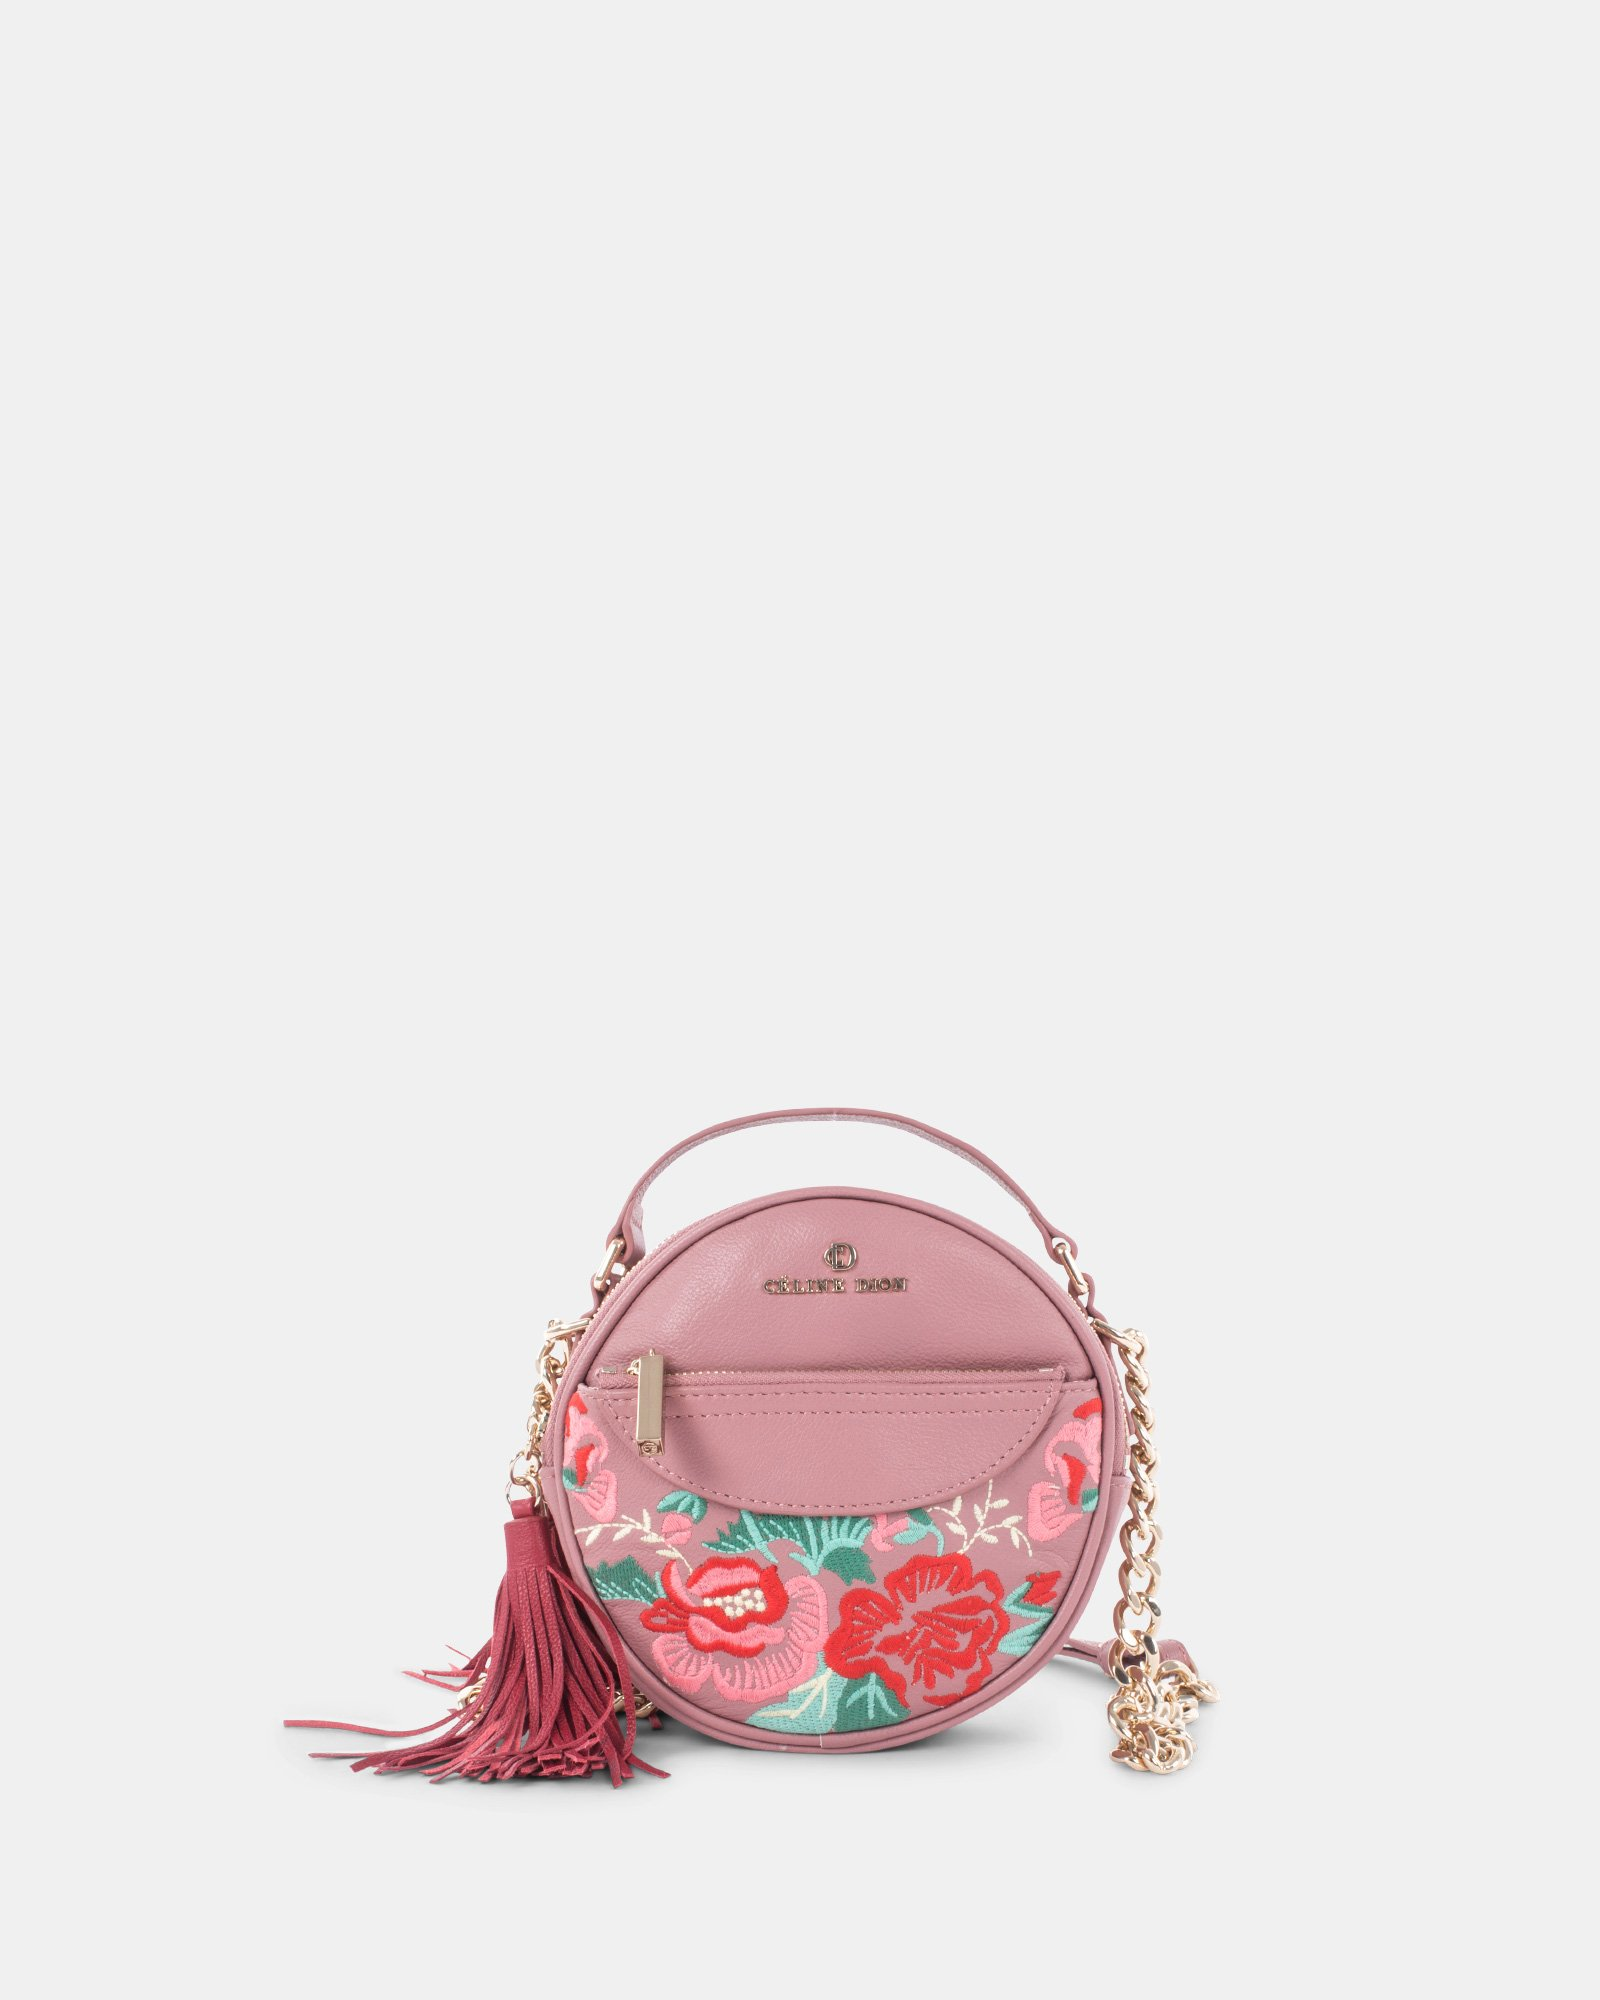 Harmonic - Round crossbody in Soft leather with embroidery - Pink - Céline Dion - Zoom